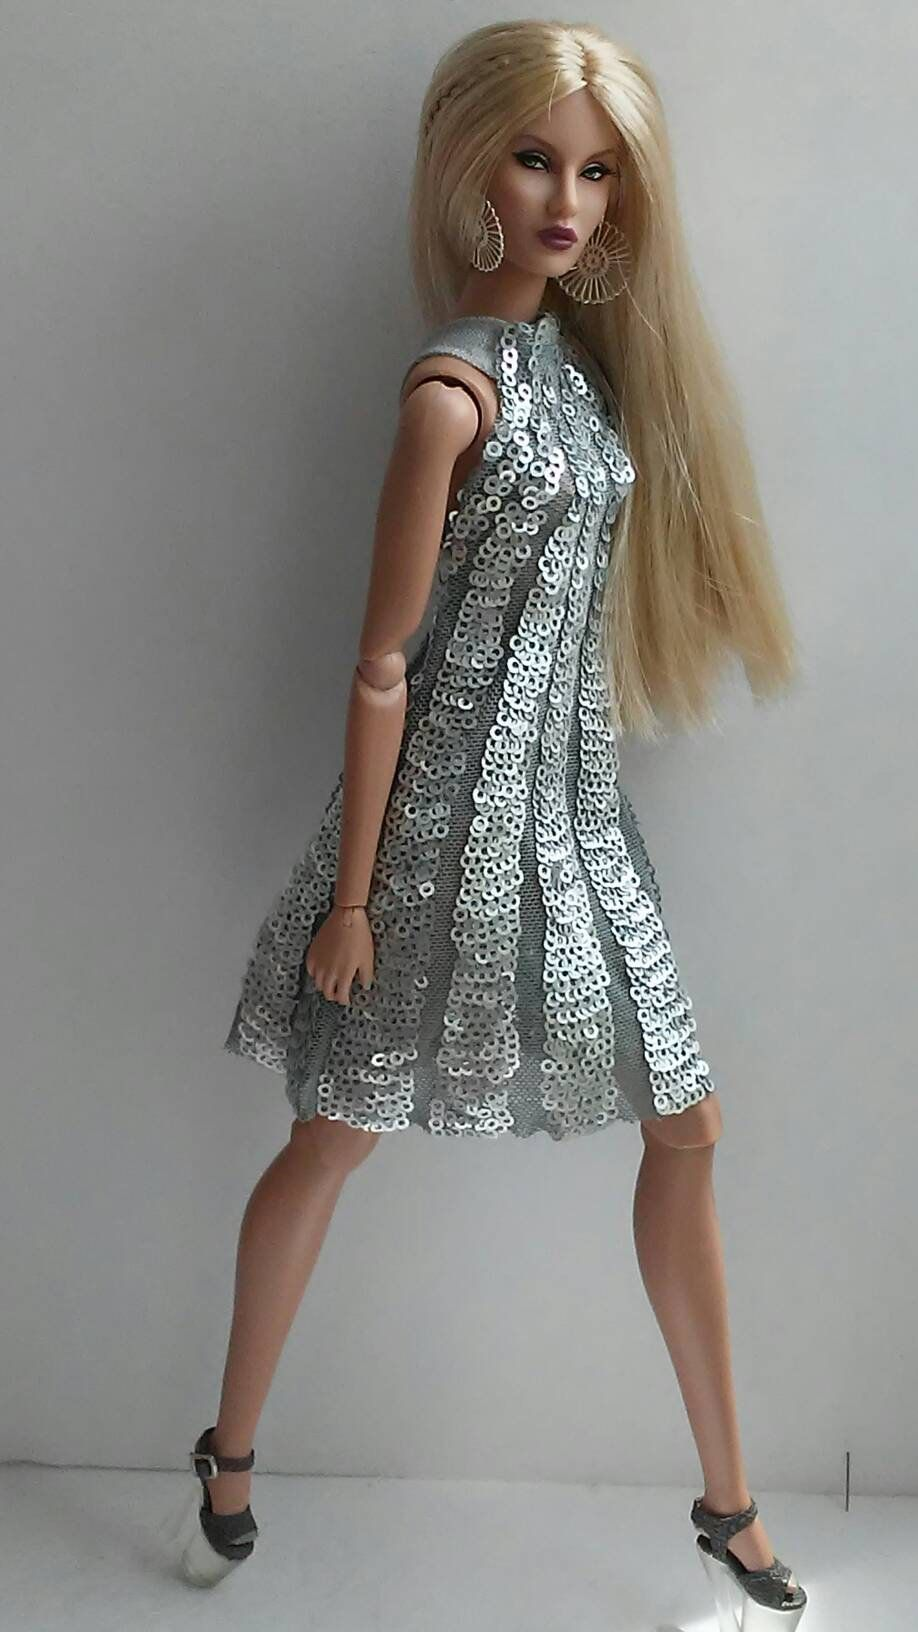 Handmade Clothes for doll Jumpsuit for 11.5in Doll